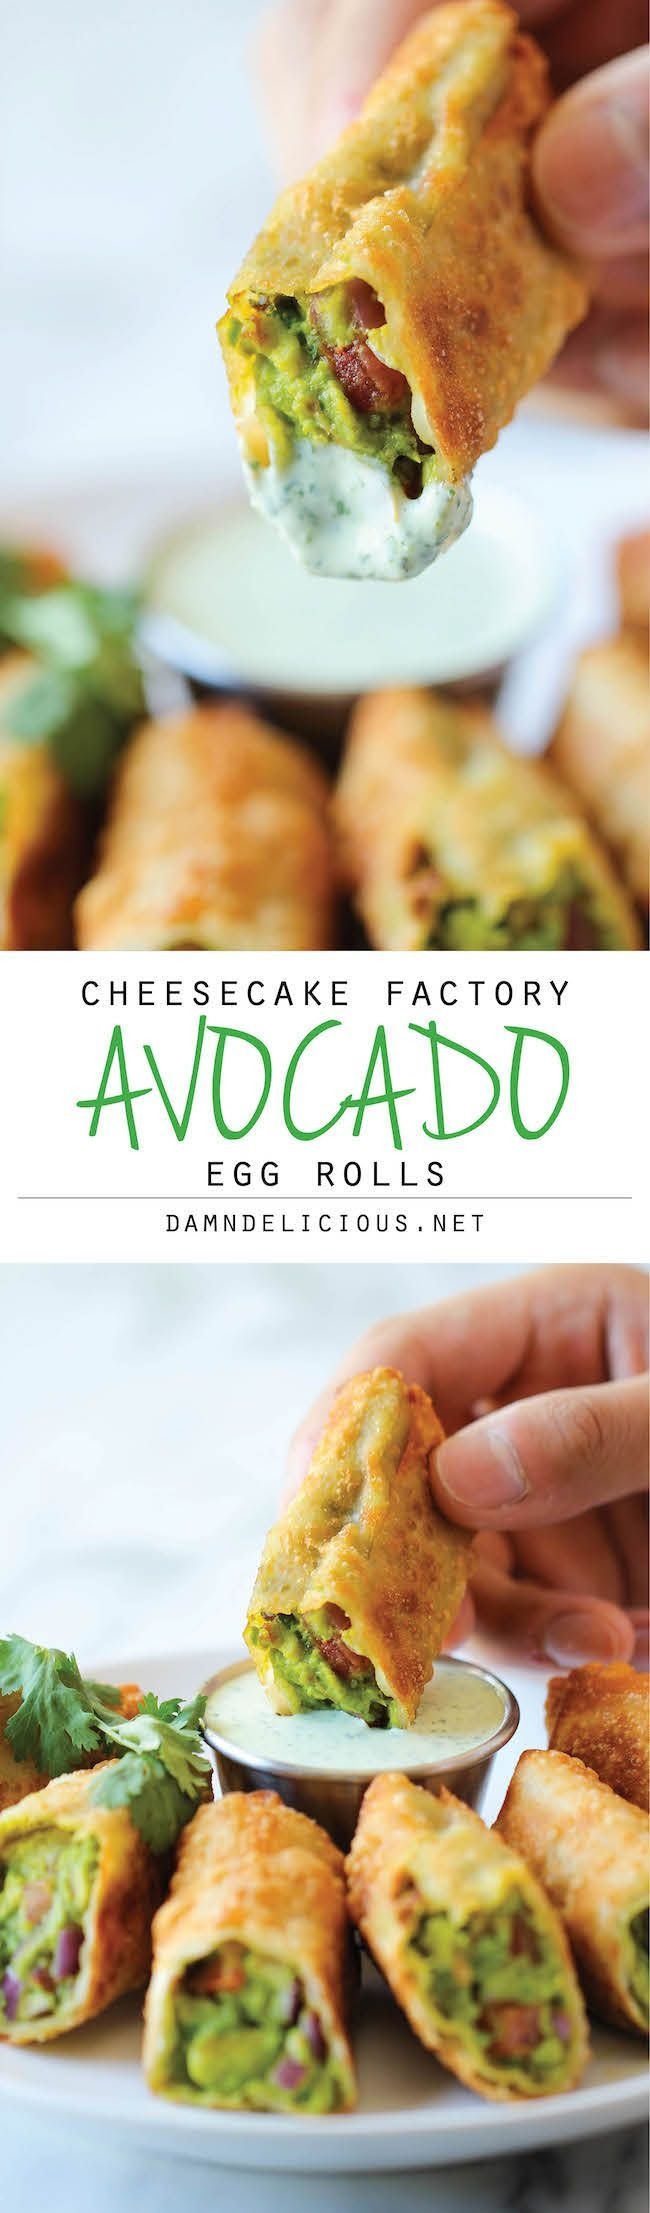 Cheesecake Factory Avocado Egg Rolls- I have never tried them but everything about this sounds yummy!